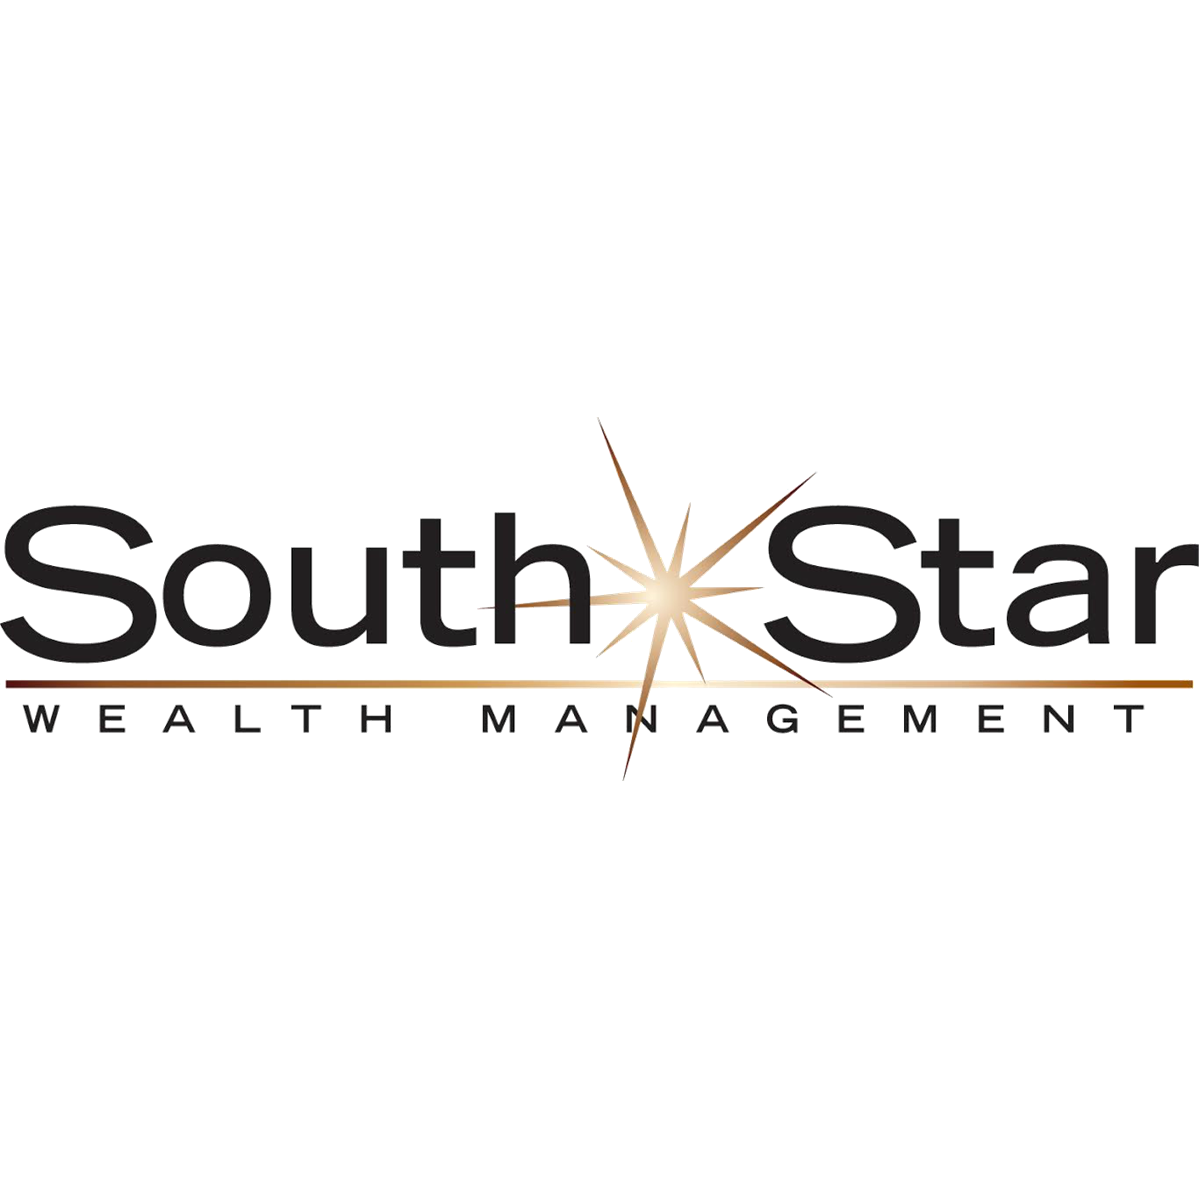 South Star Wealth Management